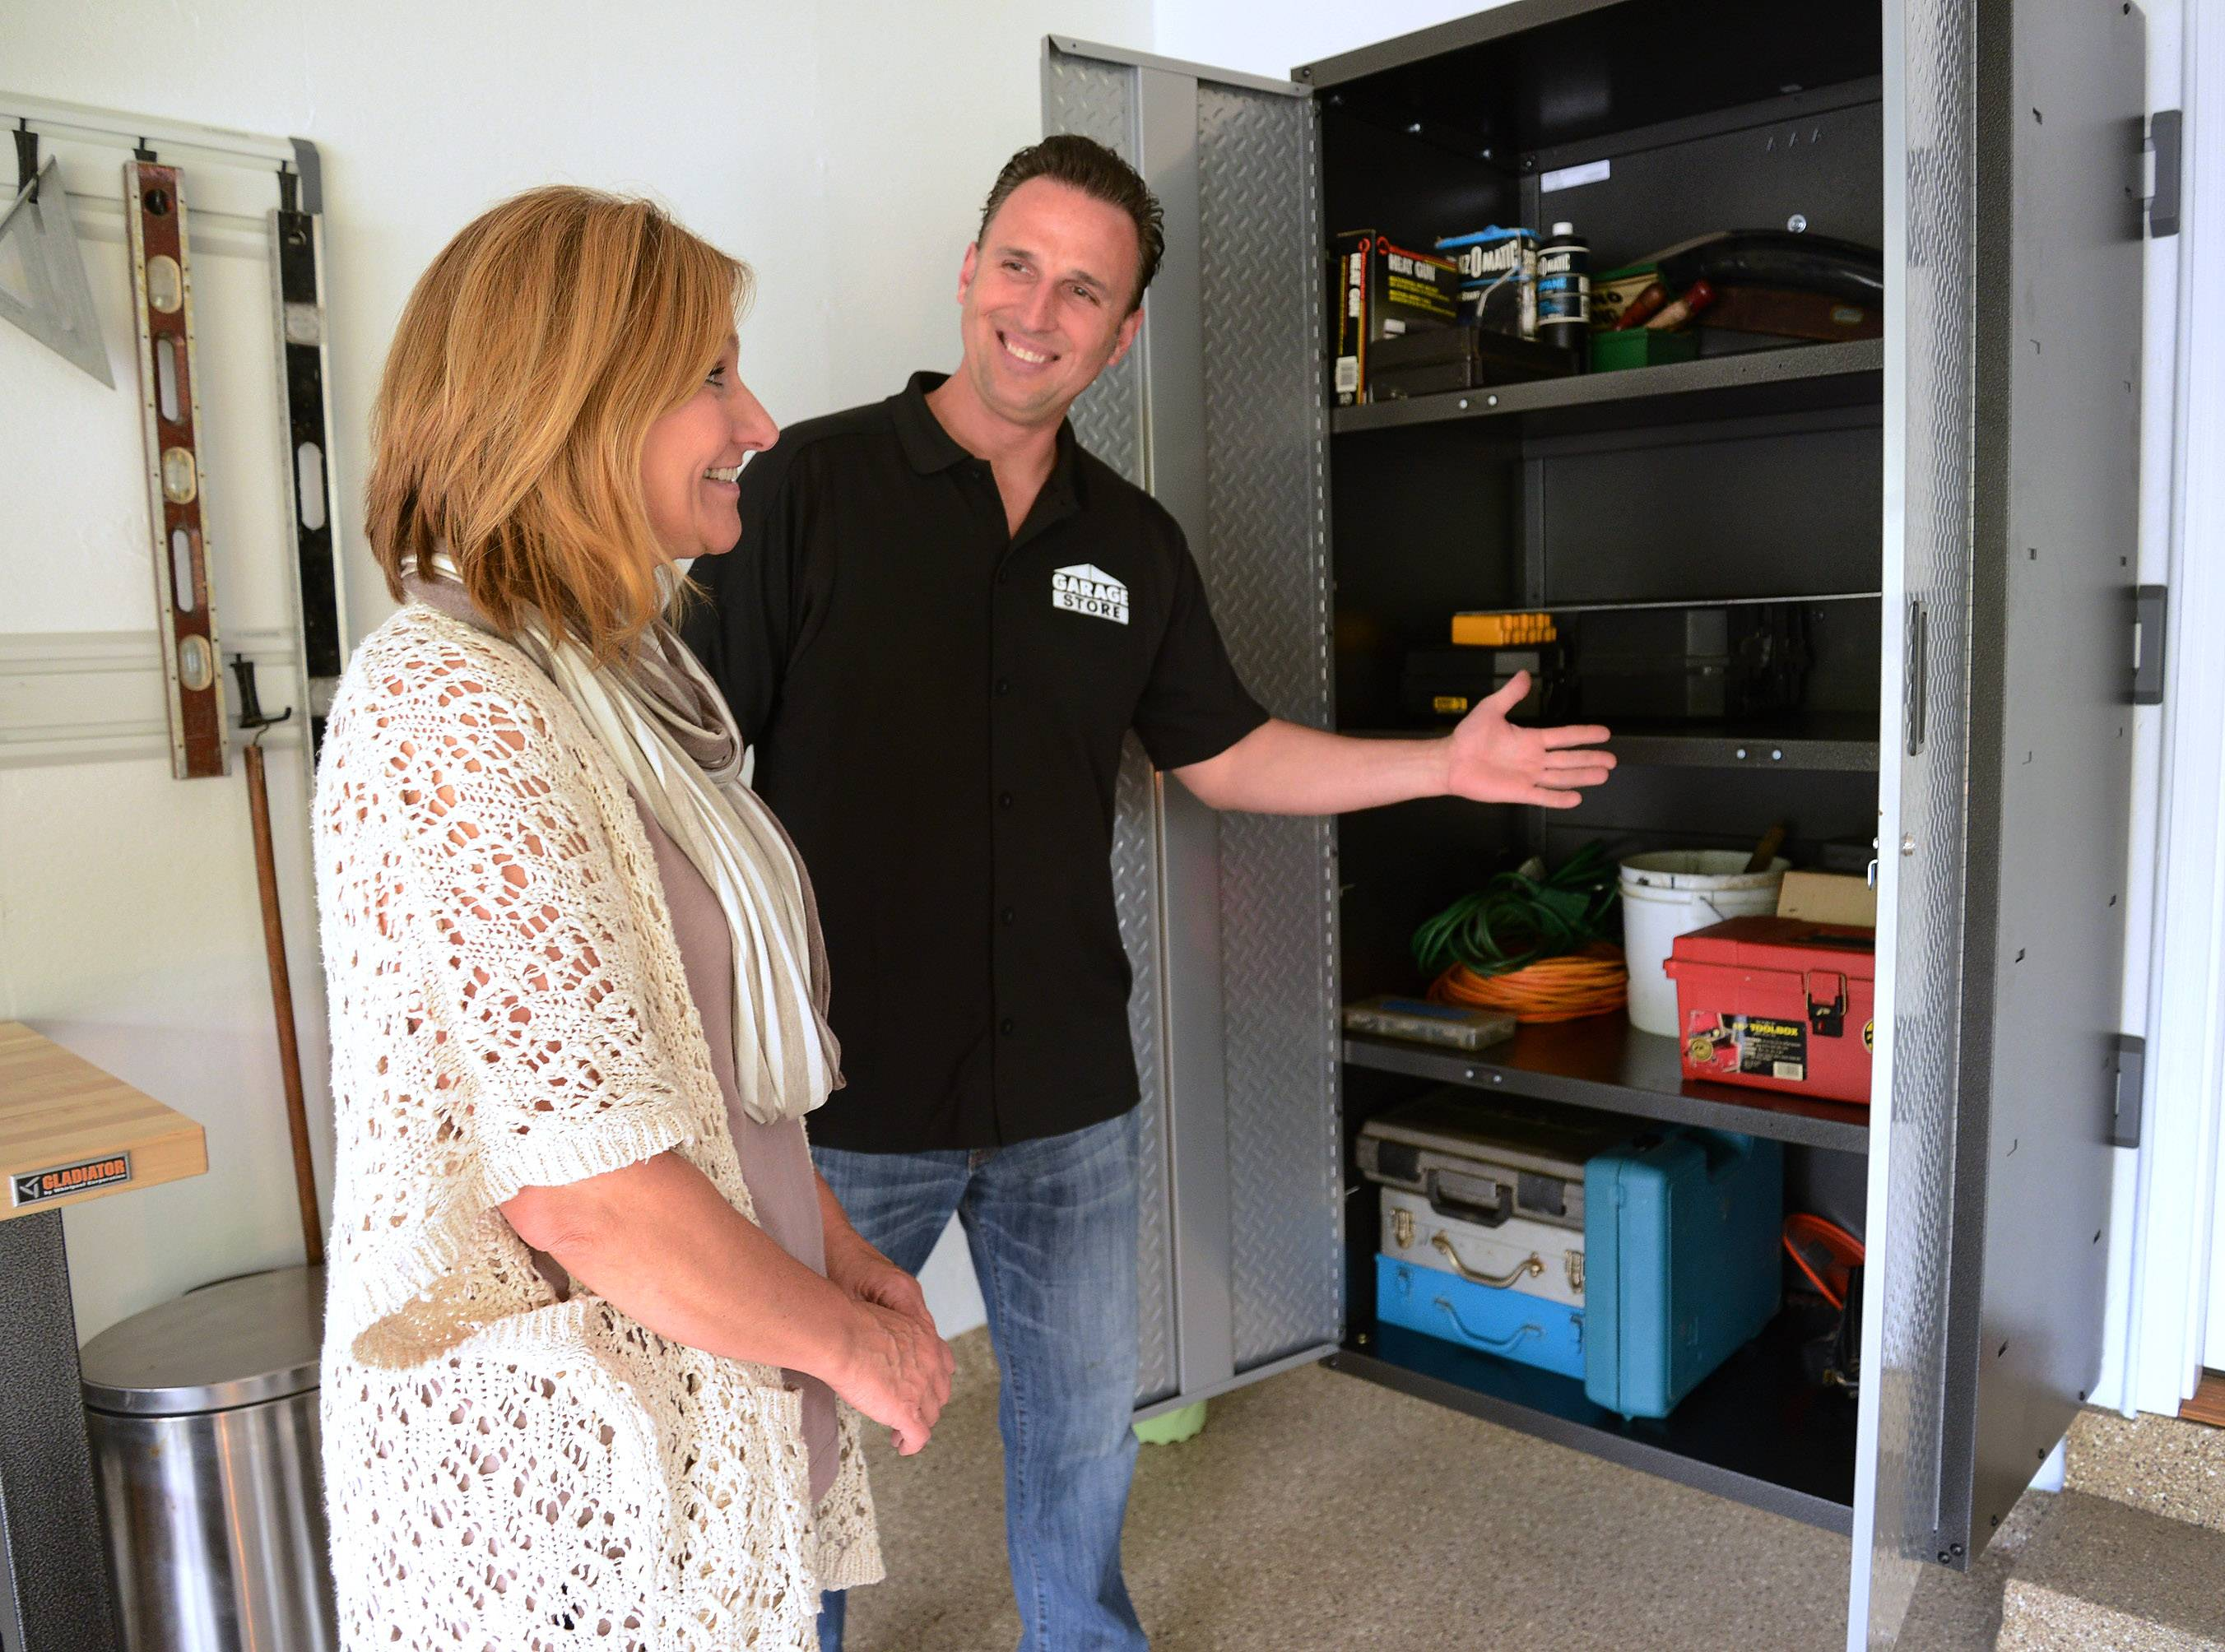 Jim Melchert of Garage Store in East Dundee shows Heidi Eglund of Prospect Heights, winner of a garage makeover contest, features of her new storage lockers.